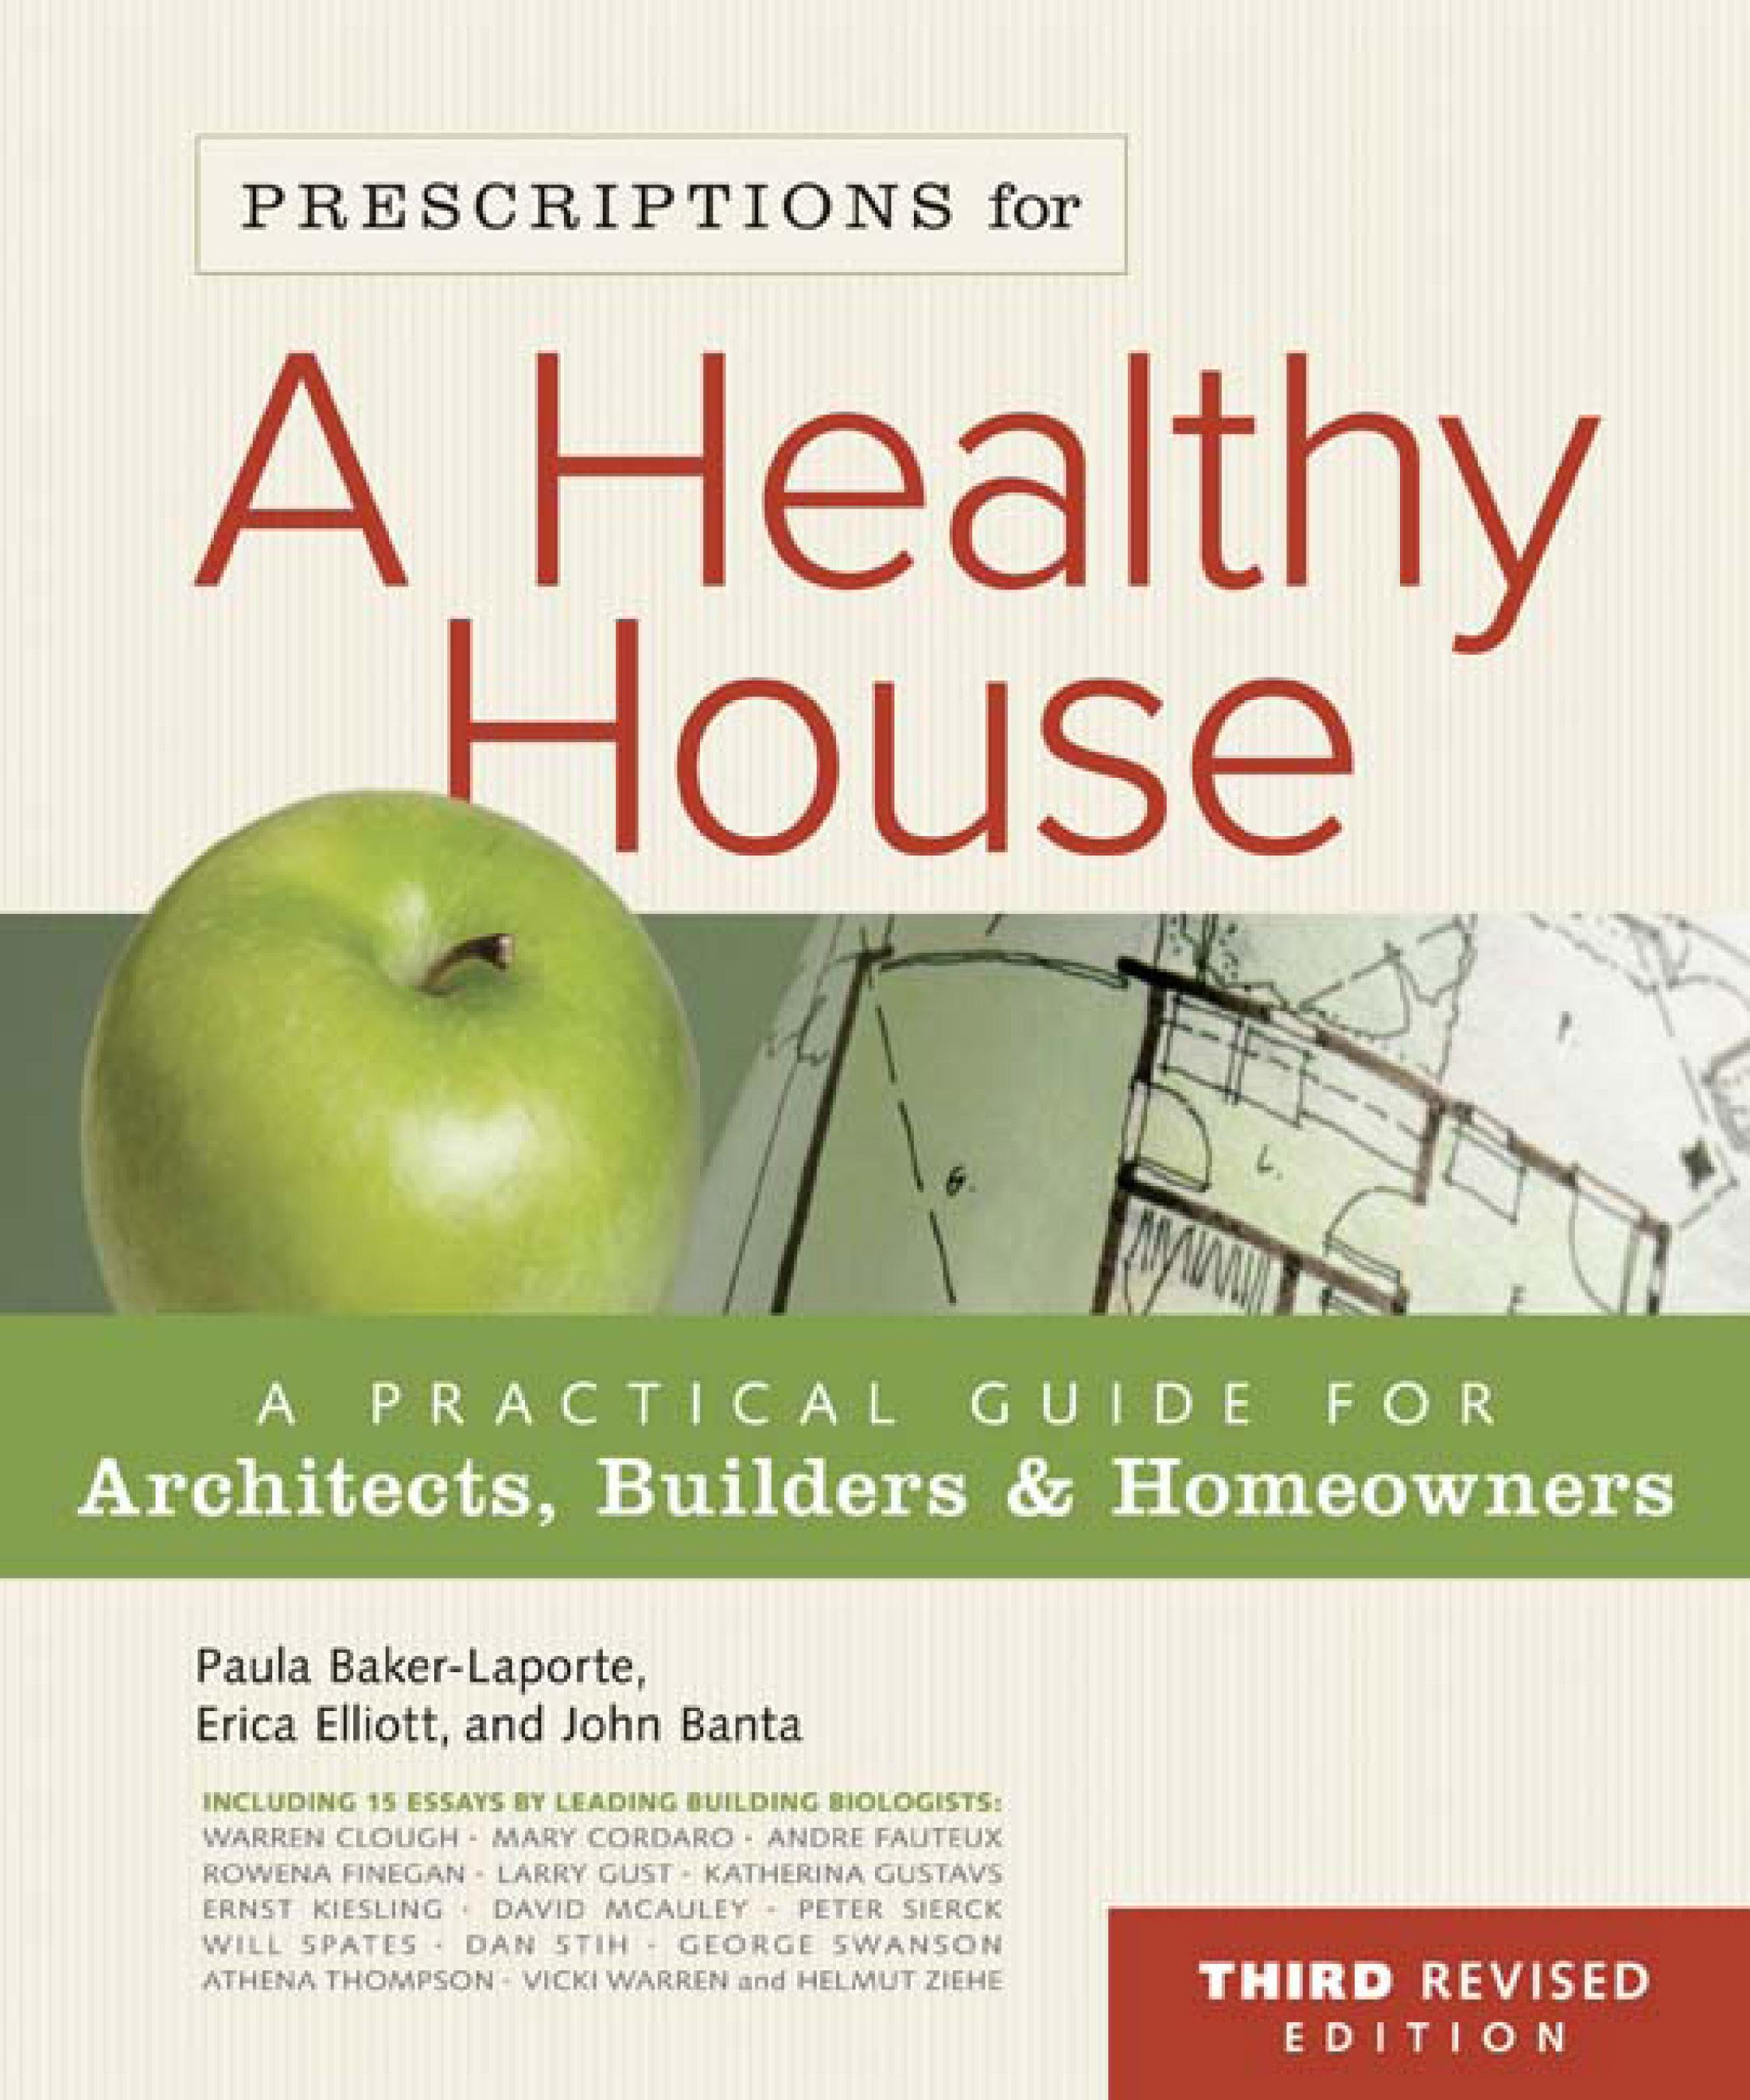 Prescriptions for a Healthy House, 3rd Edition: A Practical Guide for Architects, Builders & Homeowners EB9781550924107